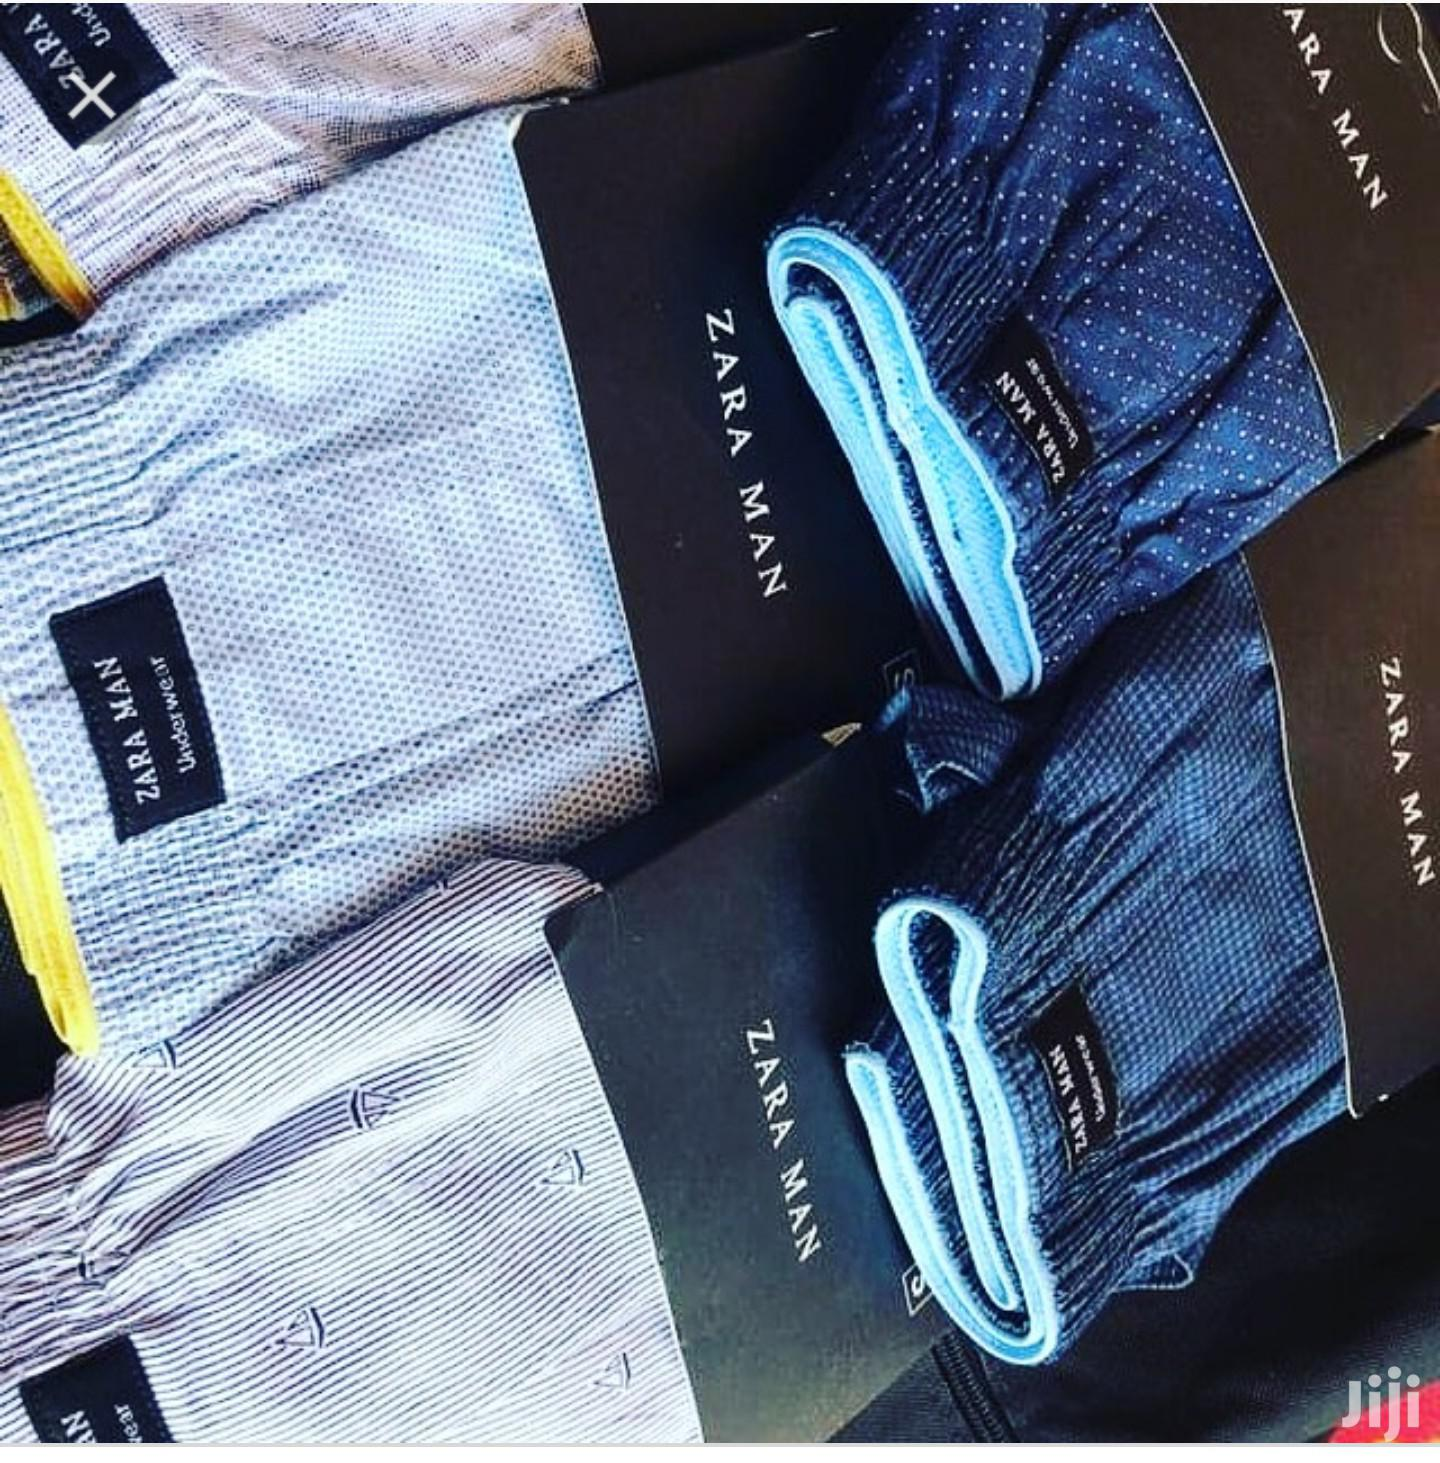 Zara Boxers | Clothing for sale in Achimota, Greater Accra, Ghana